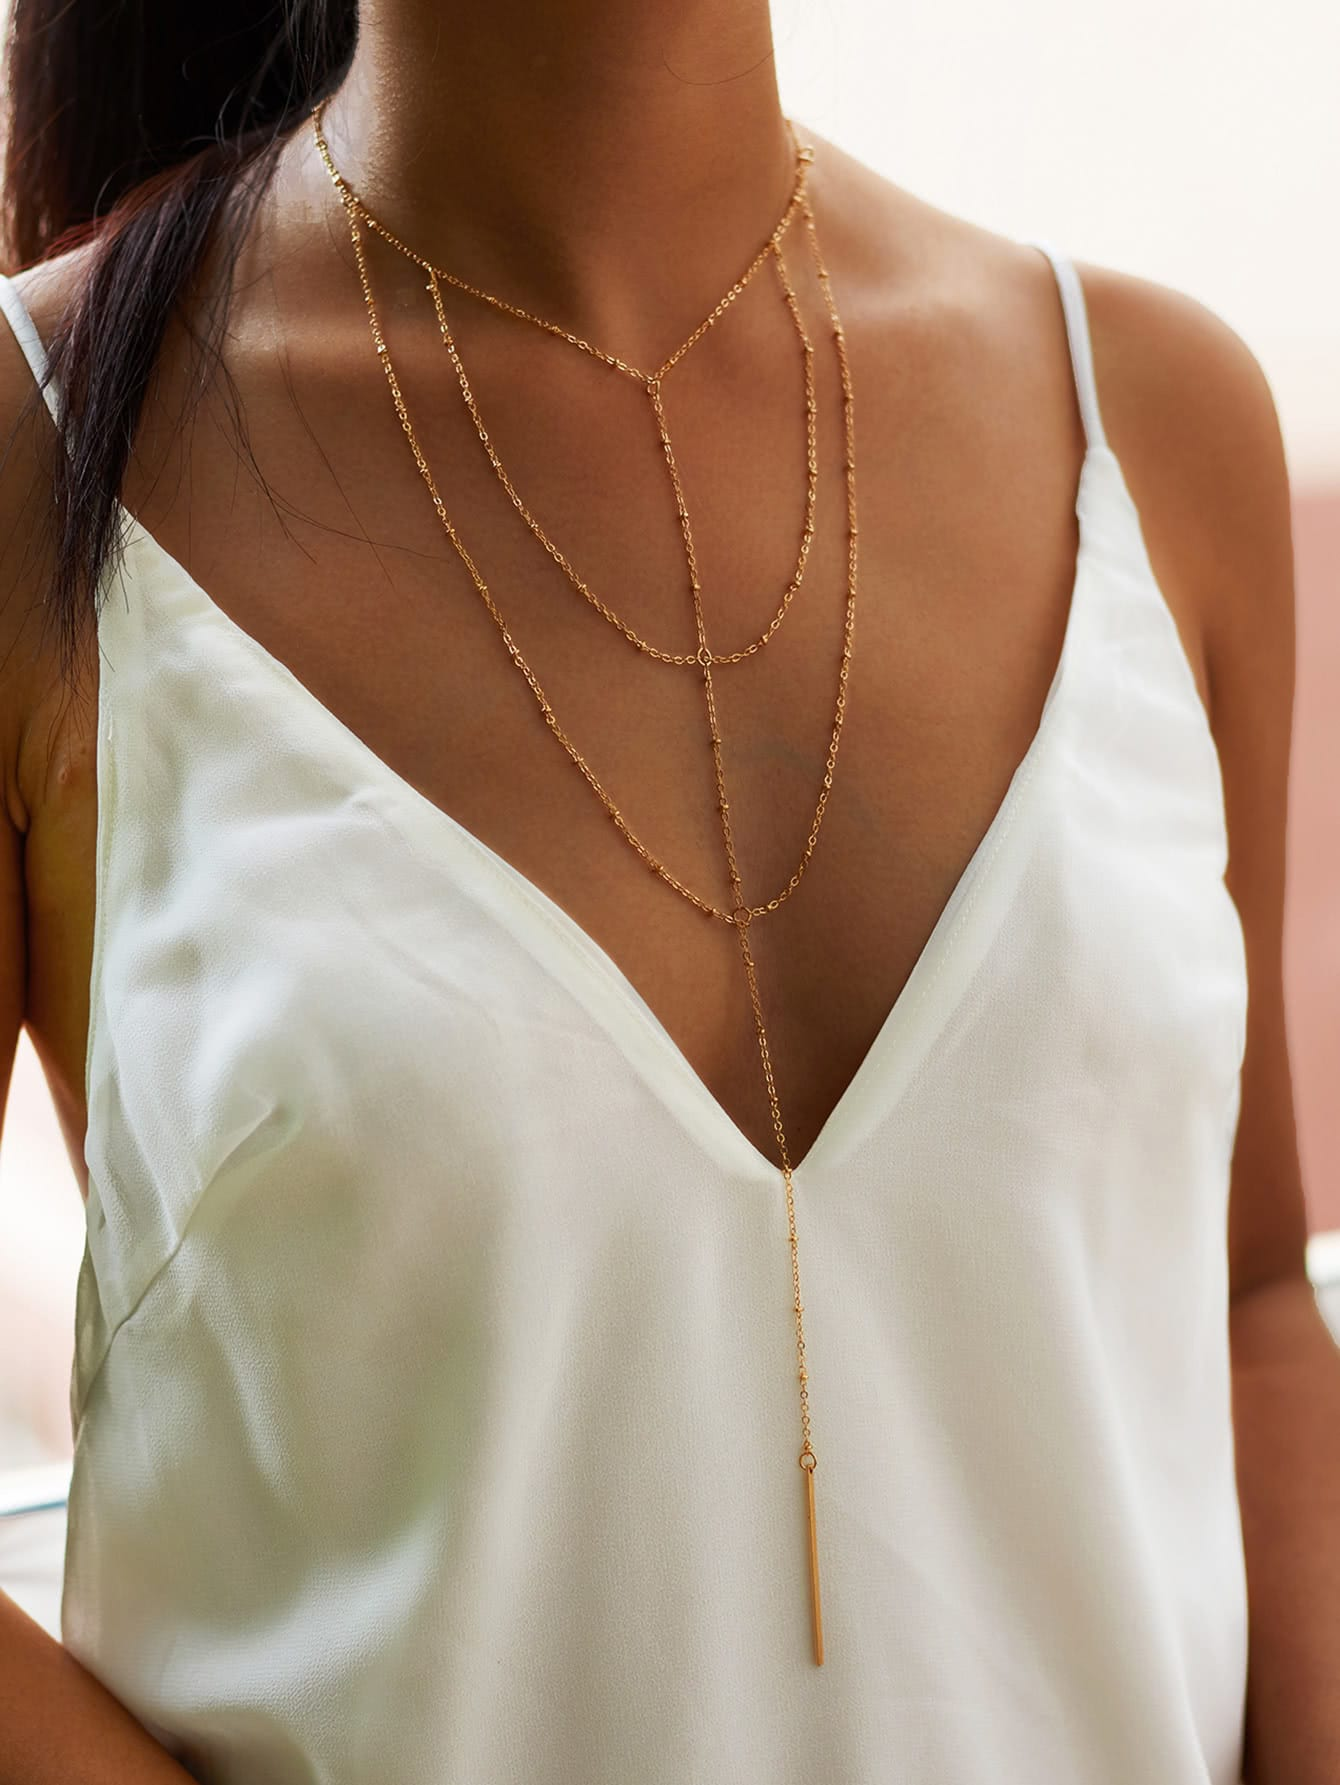 Bar Drop Layered Chain Necklace round drop chain necklace